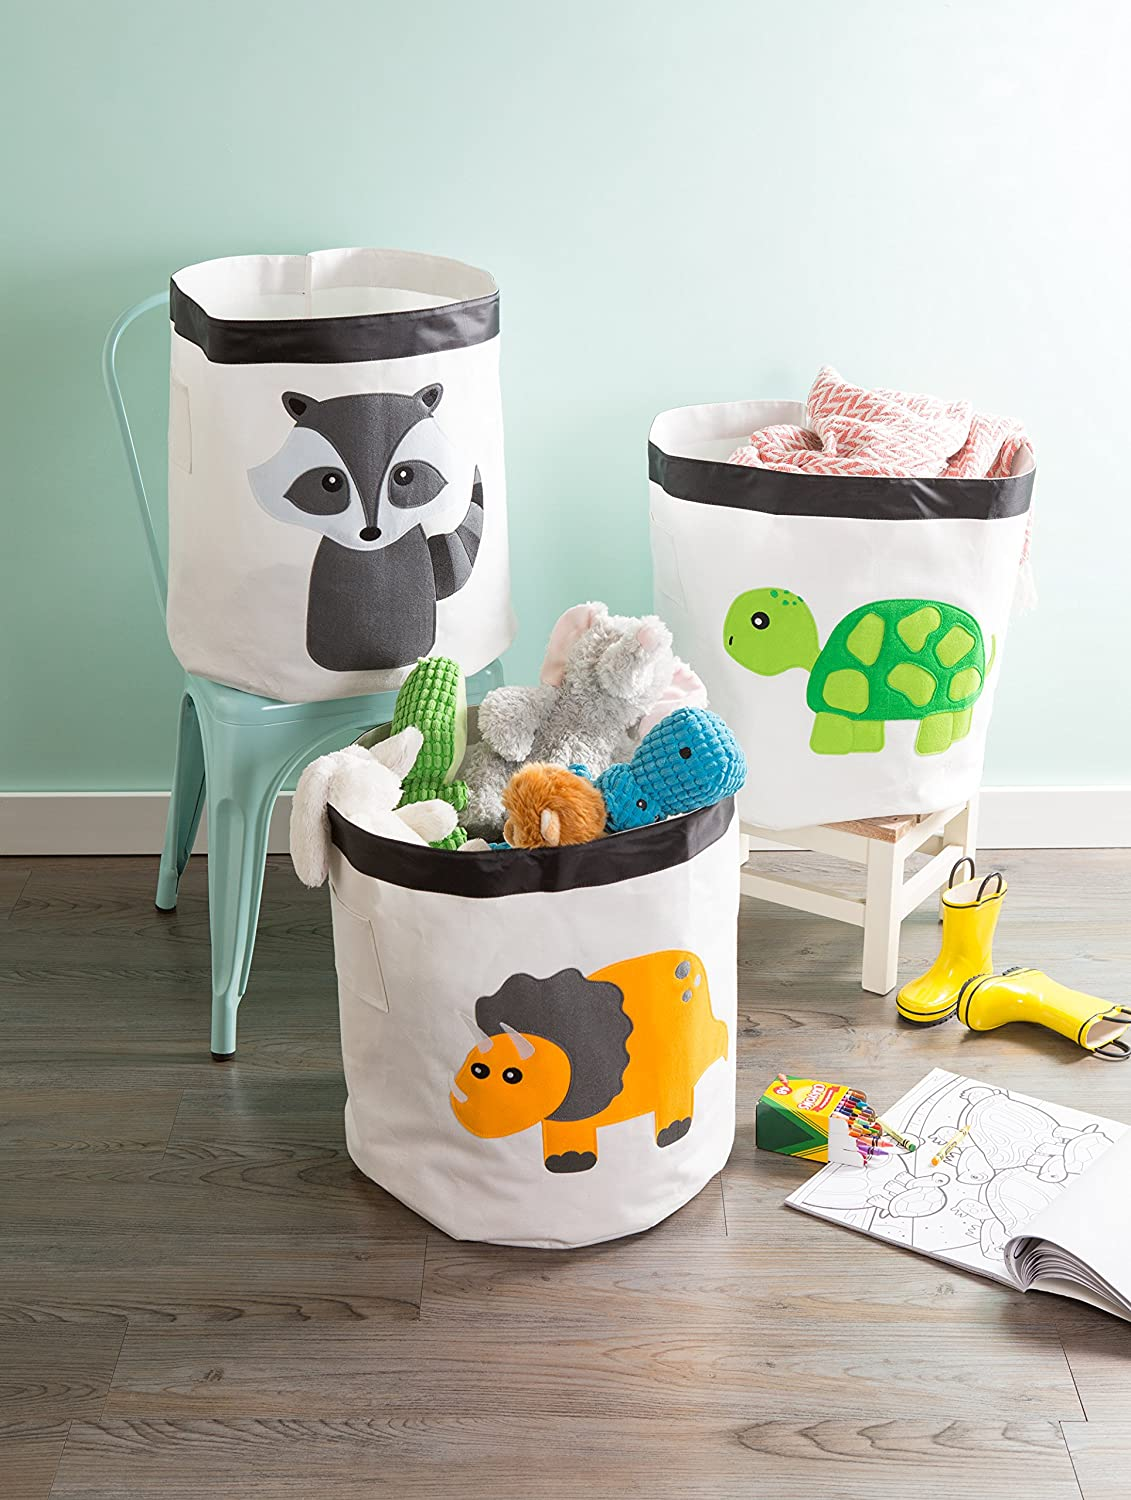 Playroom and More 13x13x13 Swan Z01948 Nursery E-Living Store Collapsible Storage Bin Cube for Bedroom